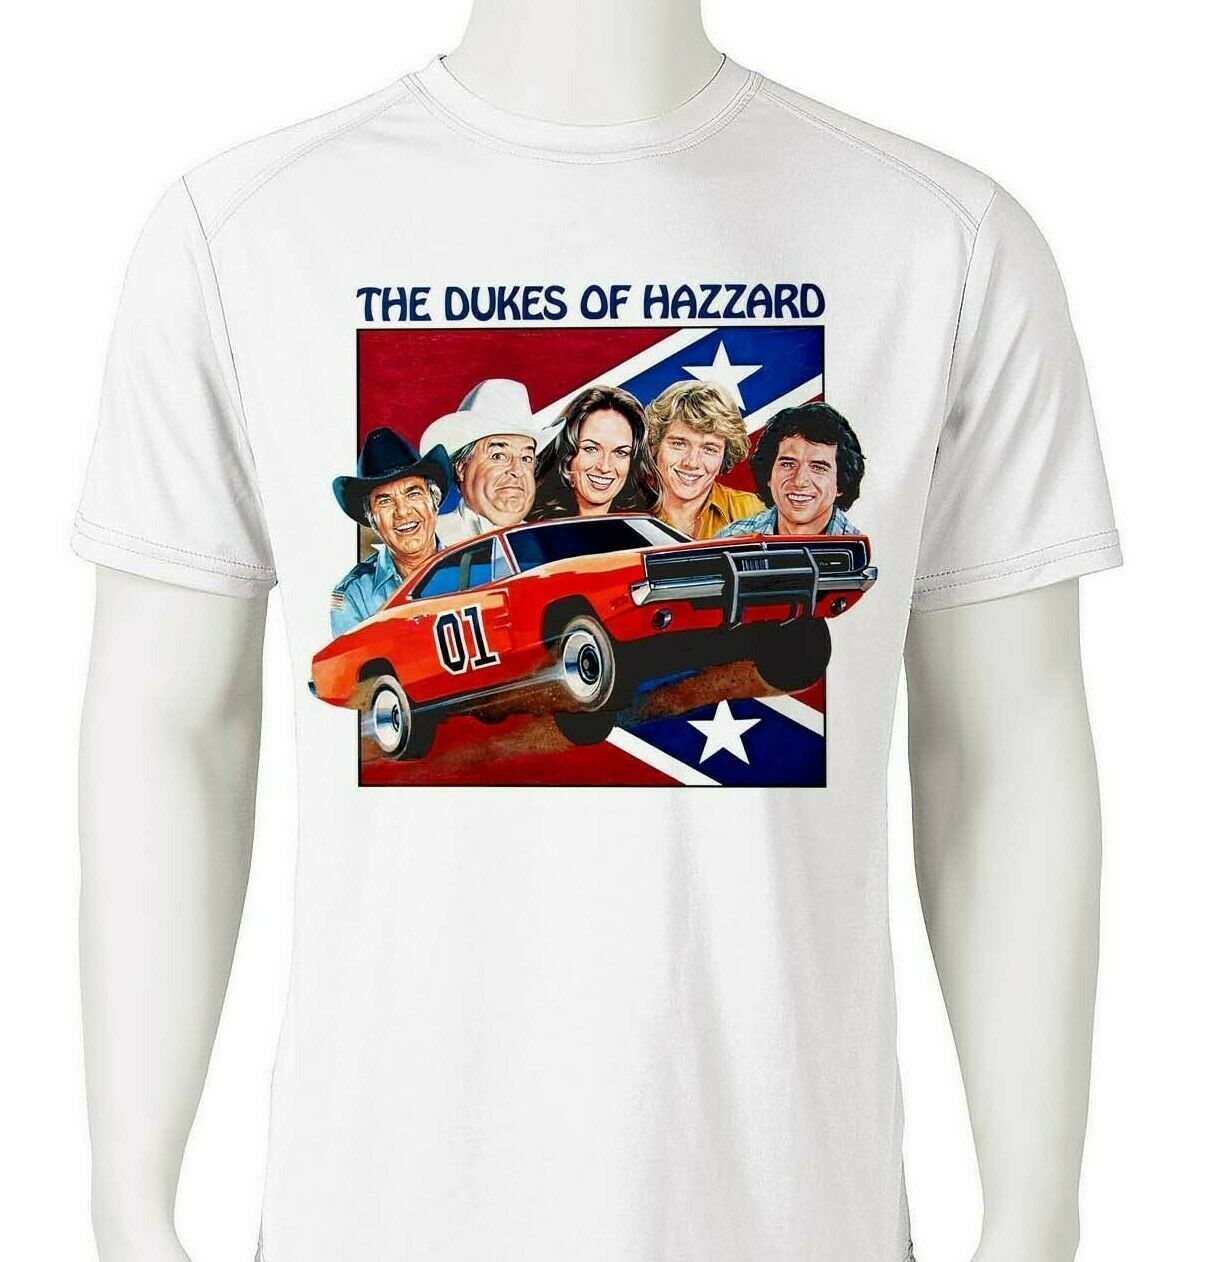 Dukes Hazzard Dri Fit graphic T-shirt moisture wicking retro 80s tv show Sun Shi